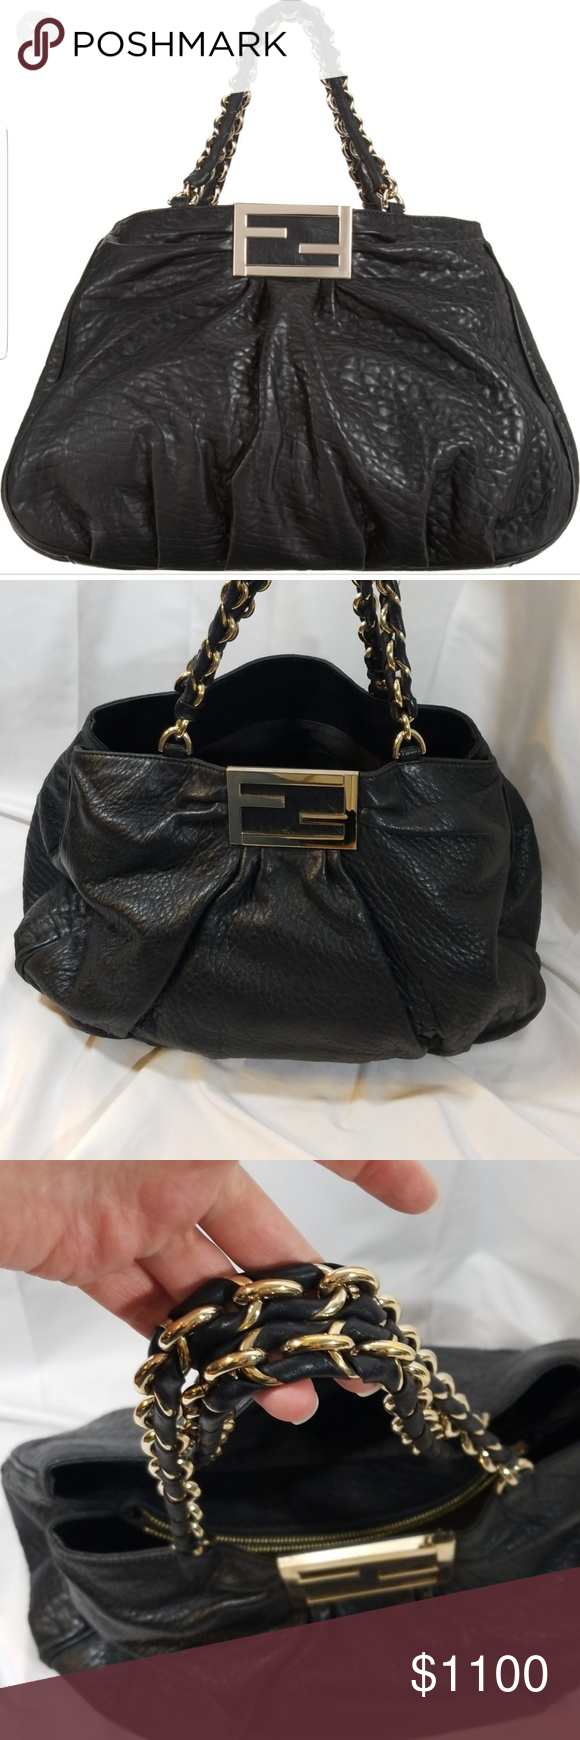 Fendi Mia Grande tote in black Napa leather Authentic 156411b58c25